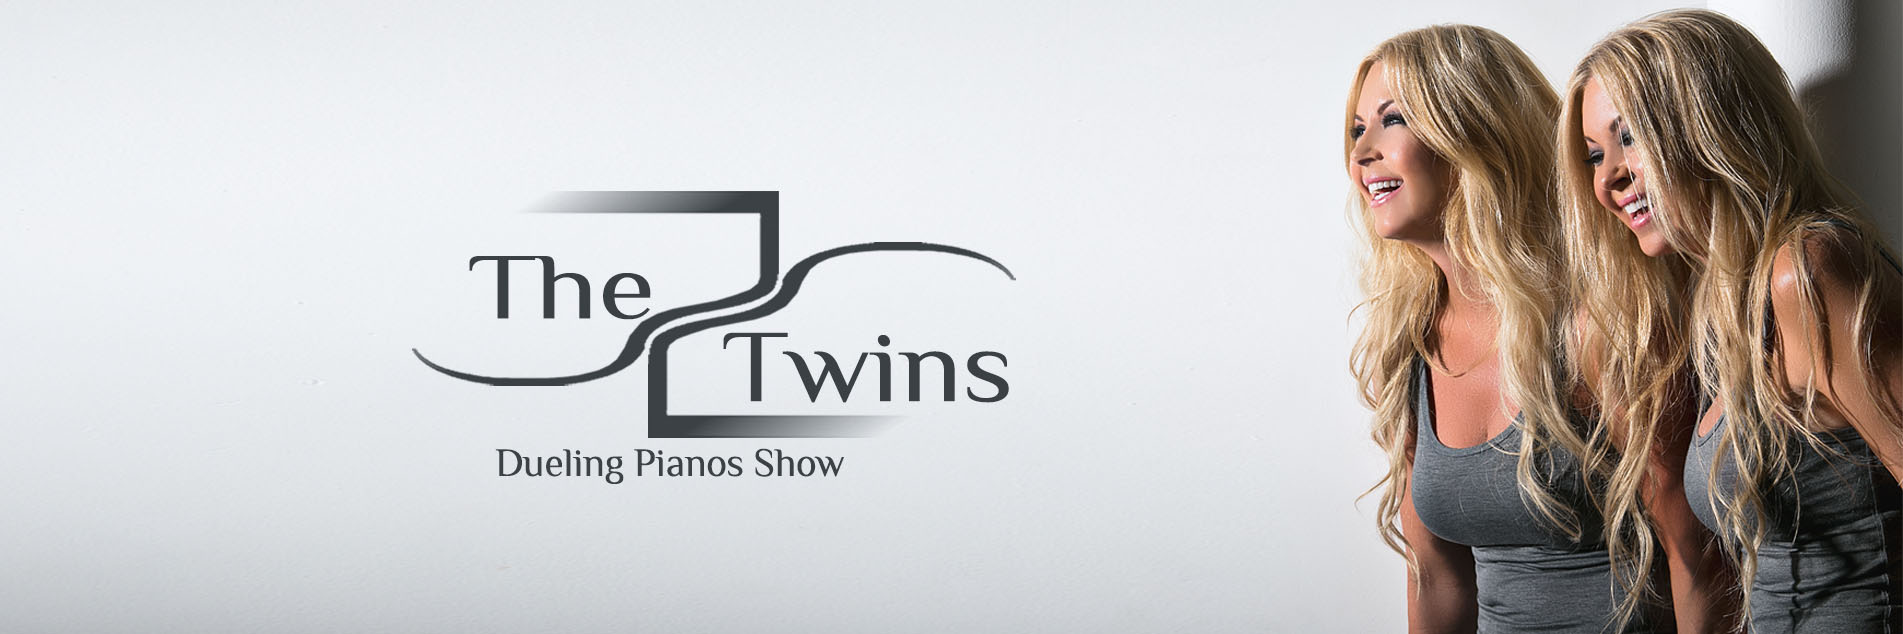 The Twins Dueling Pianos Show Las Vegas